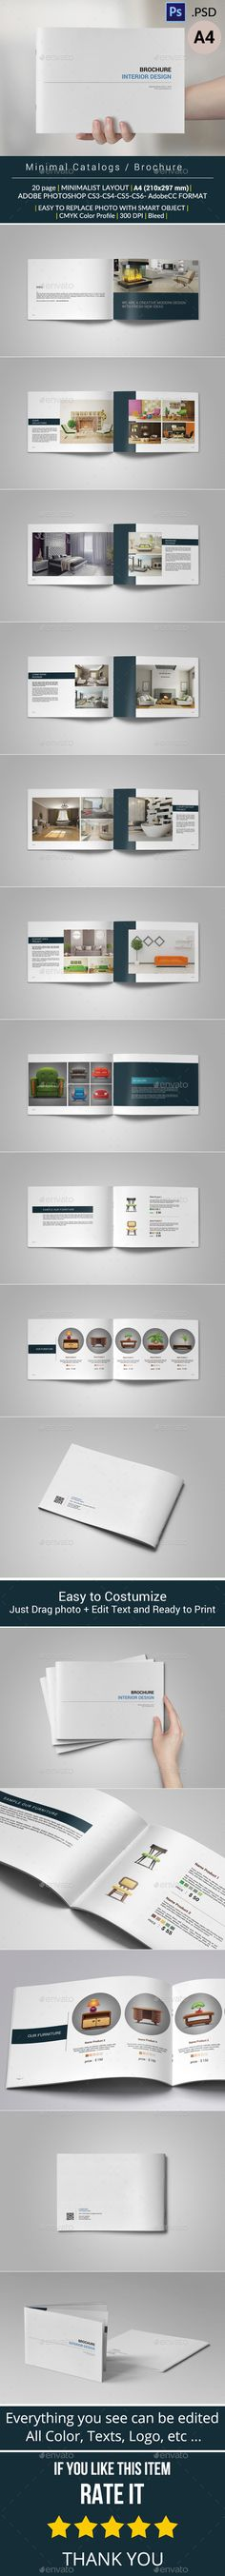 Clean And Simple Catalogue Template Catalog design, Catalog and